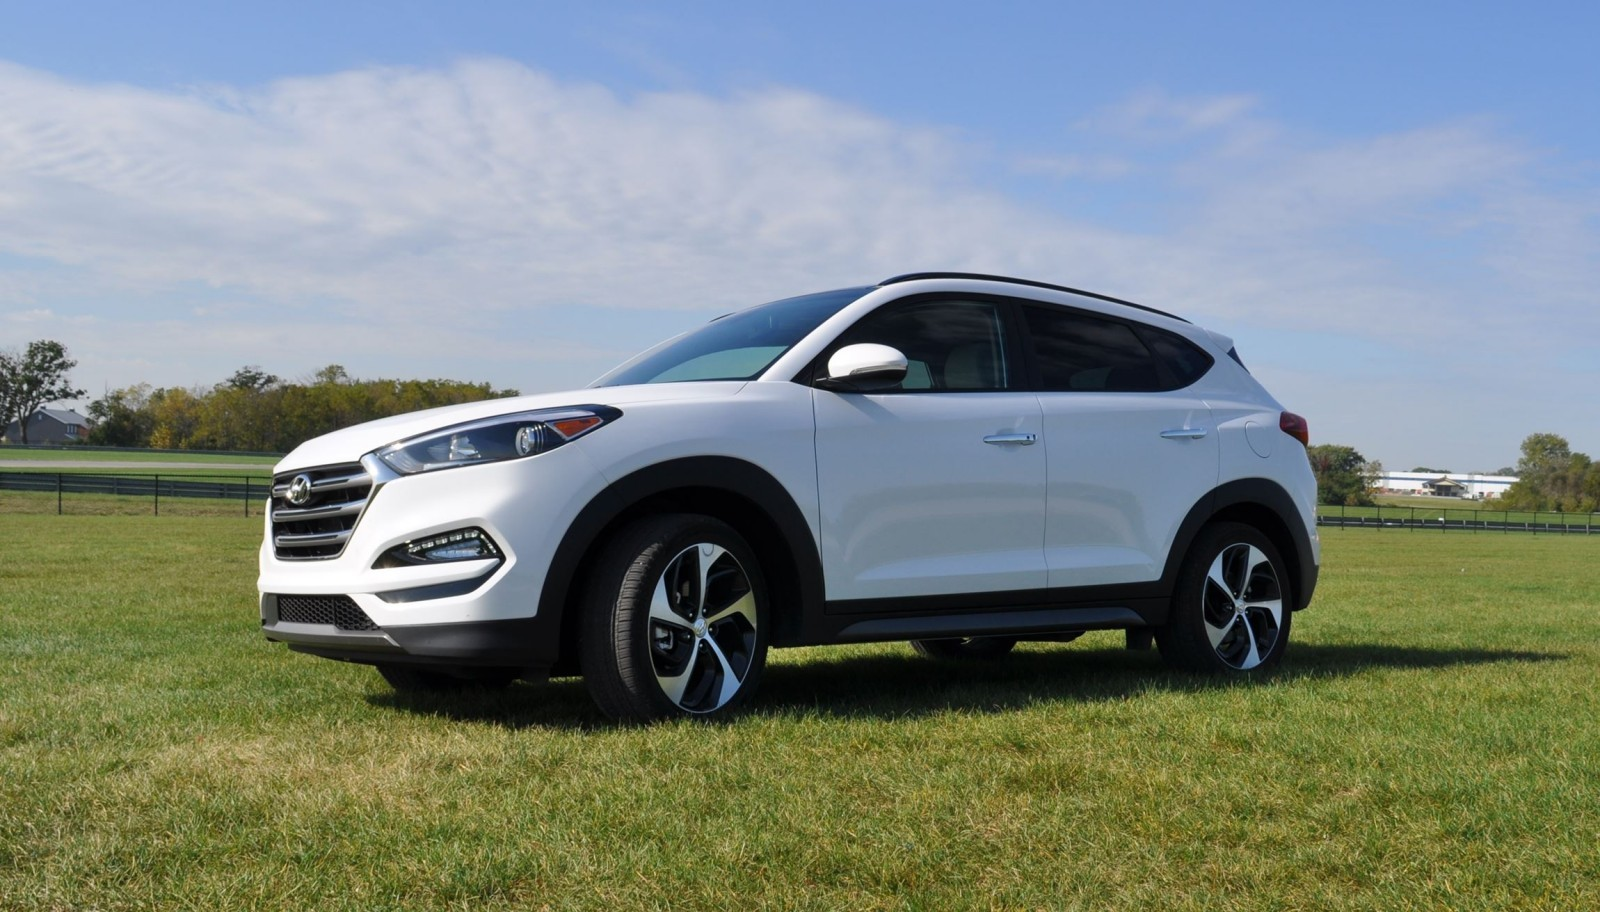 2016 hyundai tucson limited 1 6t awd review. Black Bedroom Furniture Sets. Home Design Ideas